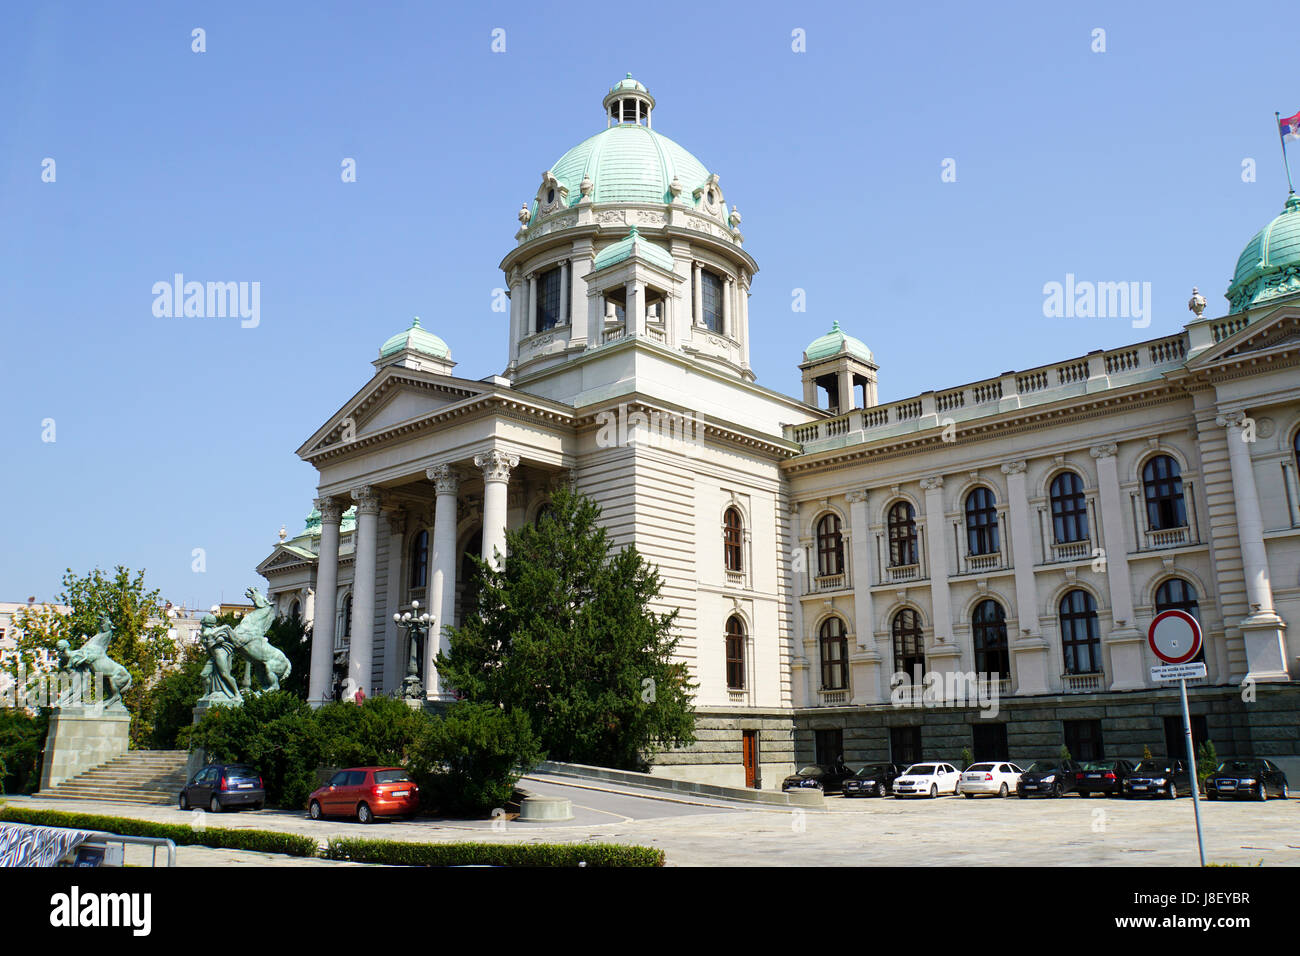 National Assembly building, Belgrade, Serbia - Stock Image